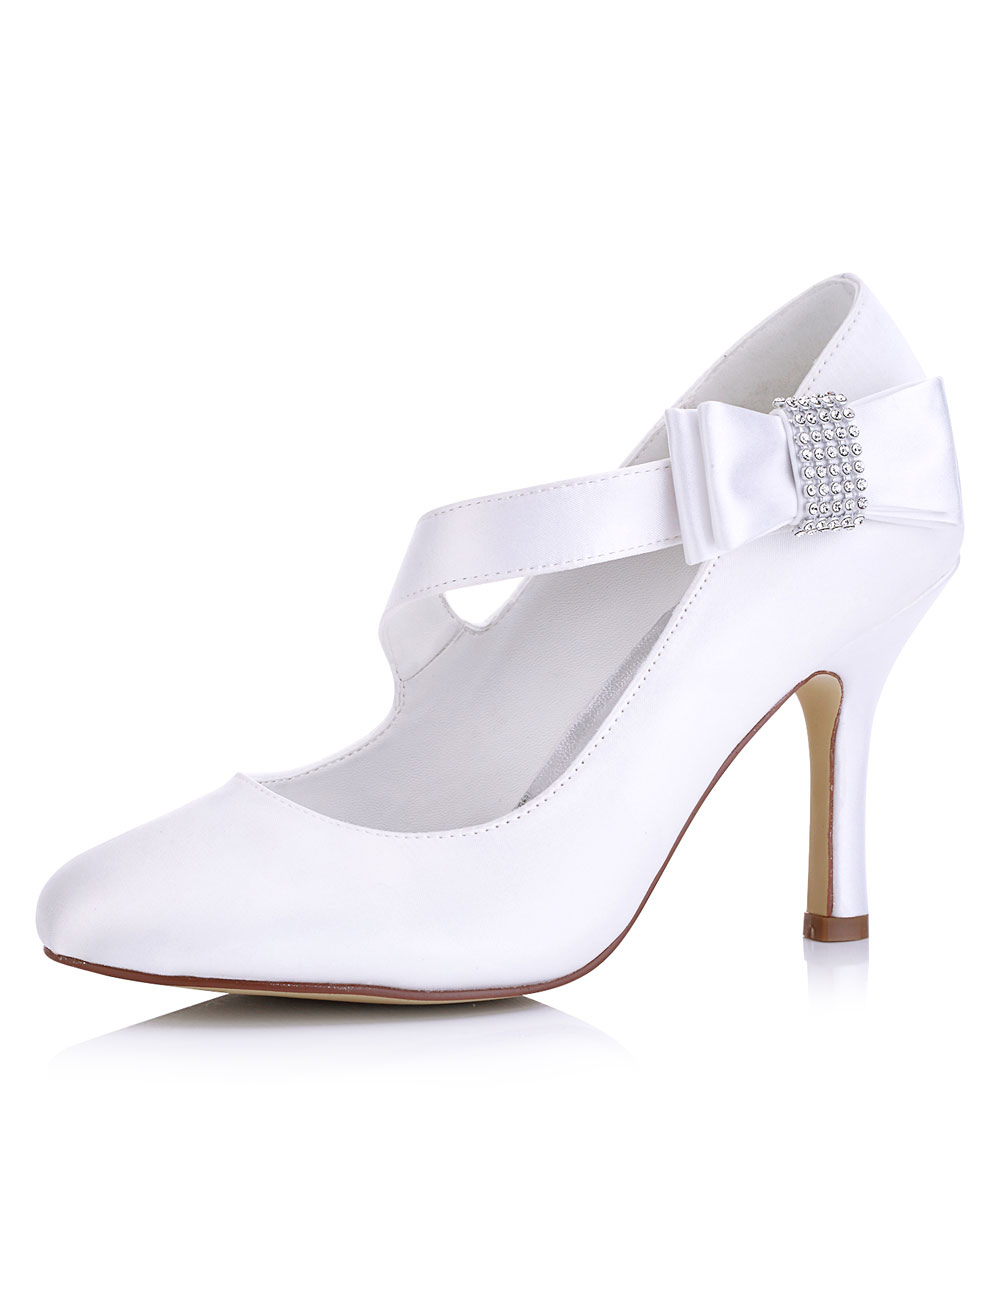 Vintage Bridal Shoes White High Heel Mary Jane Pumps Round Toe Bow Wedding Shoes